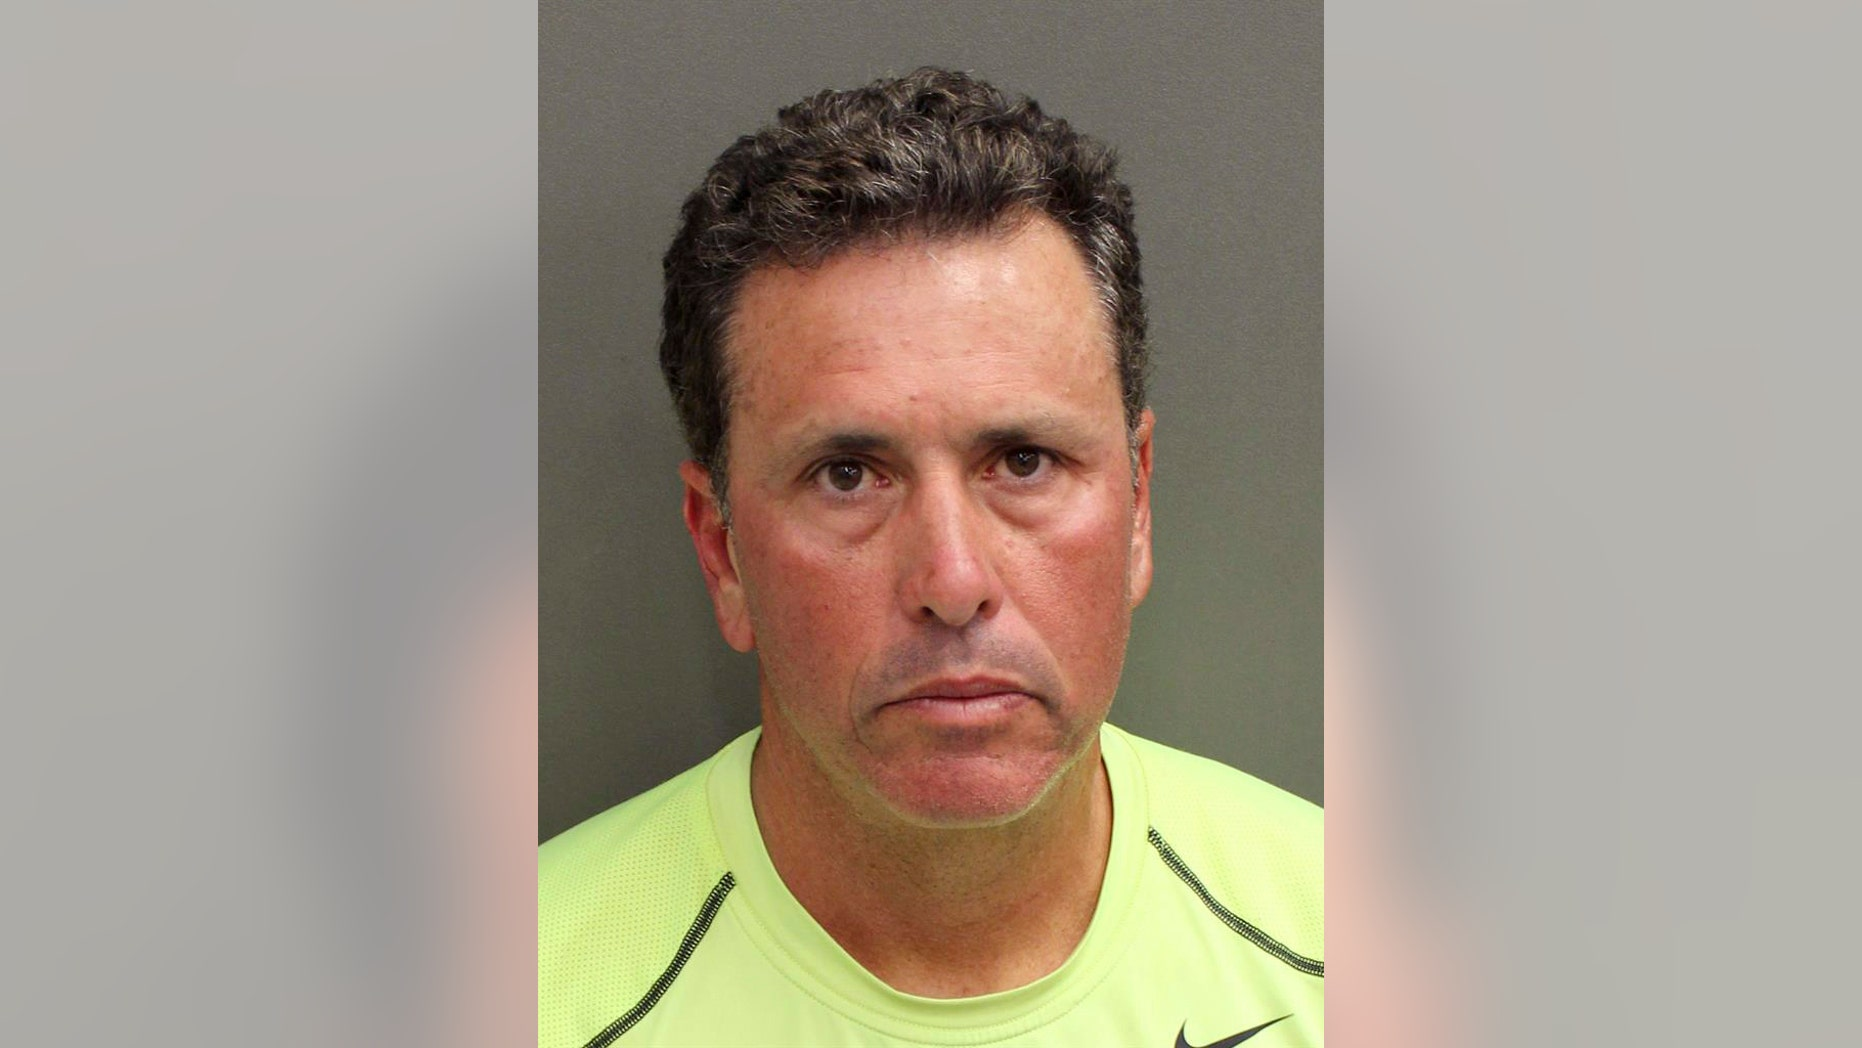 """FILE - This undated file photo provided by Orange County Corrections shows Gustavo Falcon, the last of South Florida's """"Cocaine Cowboys"""". Falcon was arrested Wednesday, April 12, 2017, some 26 years after he went on the lam, while on a 40-mile bike ride with his wife near the Orlando suburb where they apparently lived under assumed names. Falcon makes his first court appearance in Miami, Tuesday, April 25, 2017. (Orange County Corrections via AP, File)"""